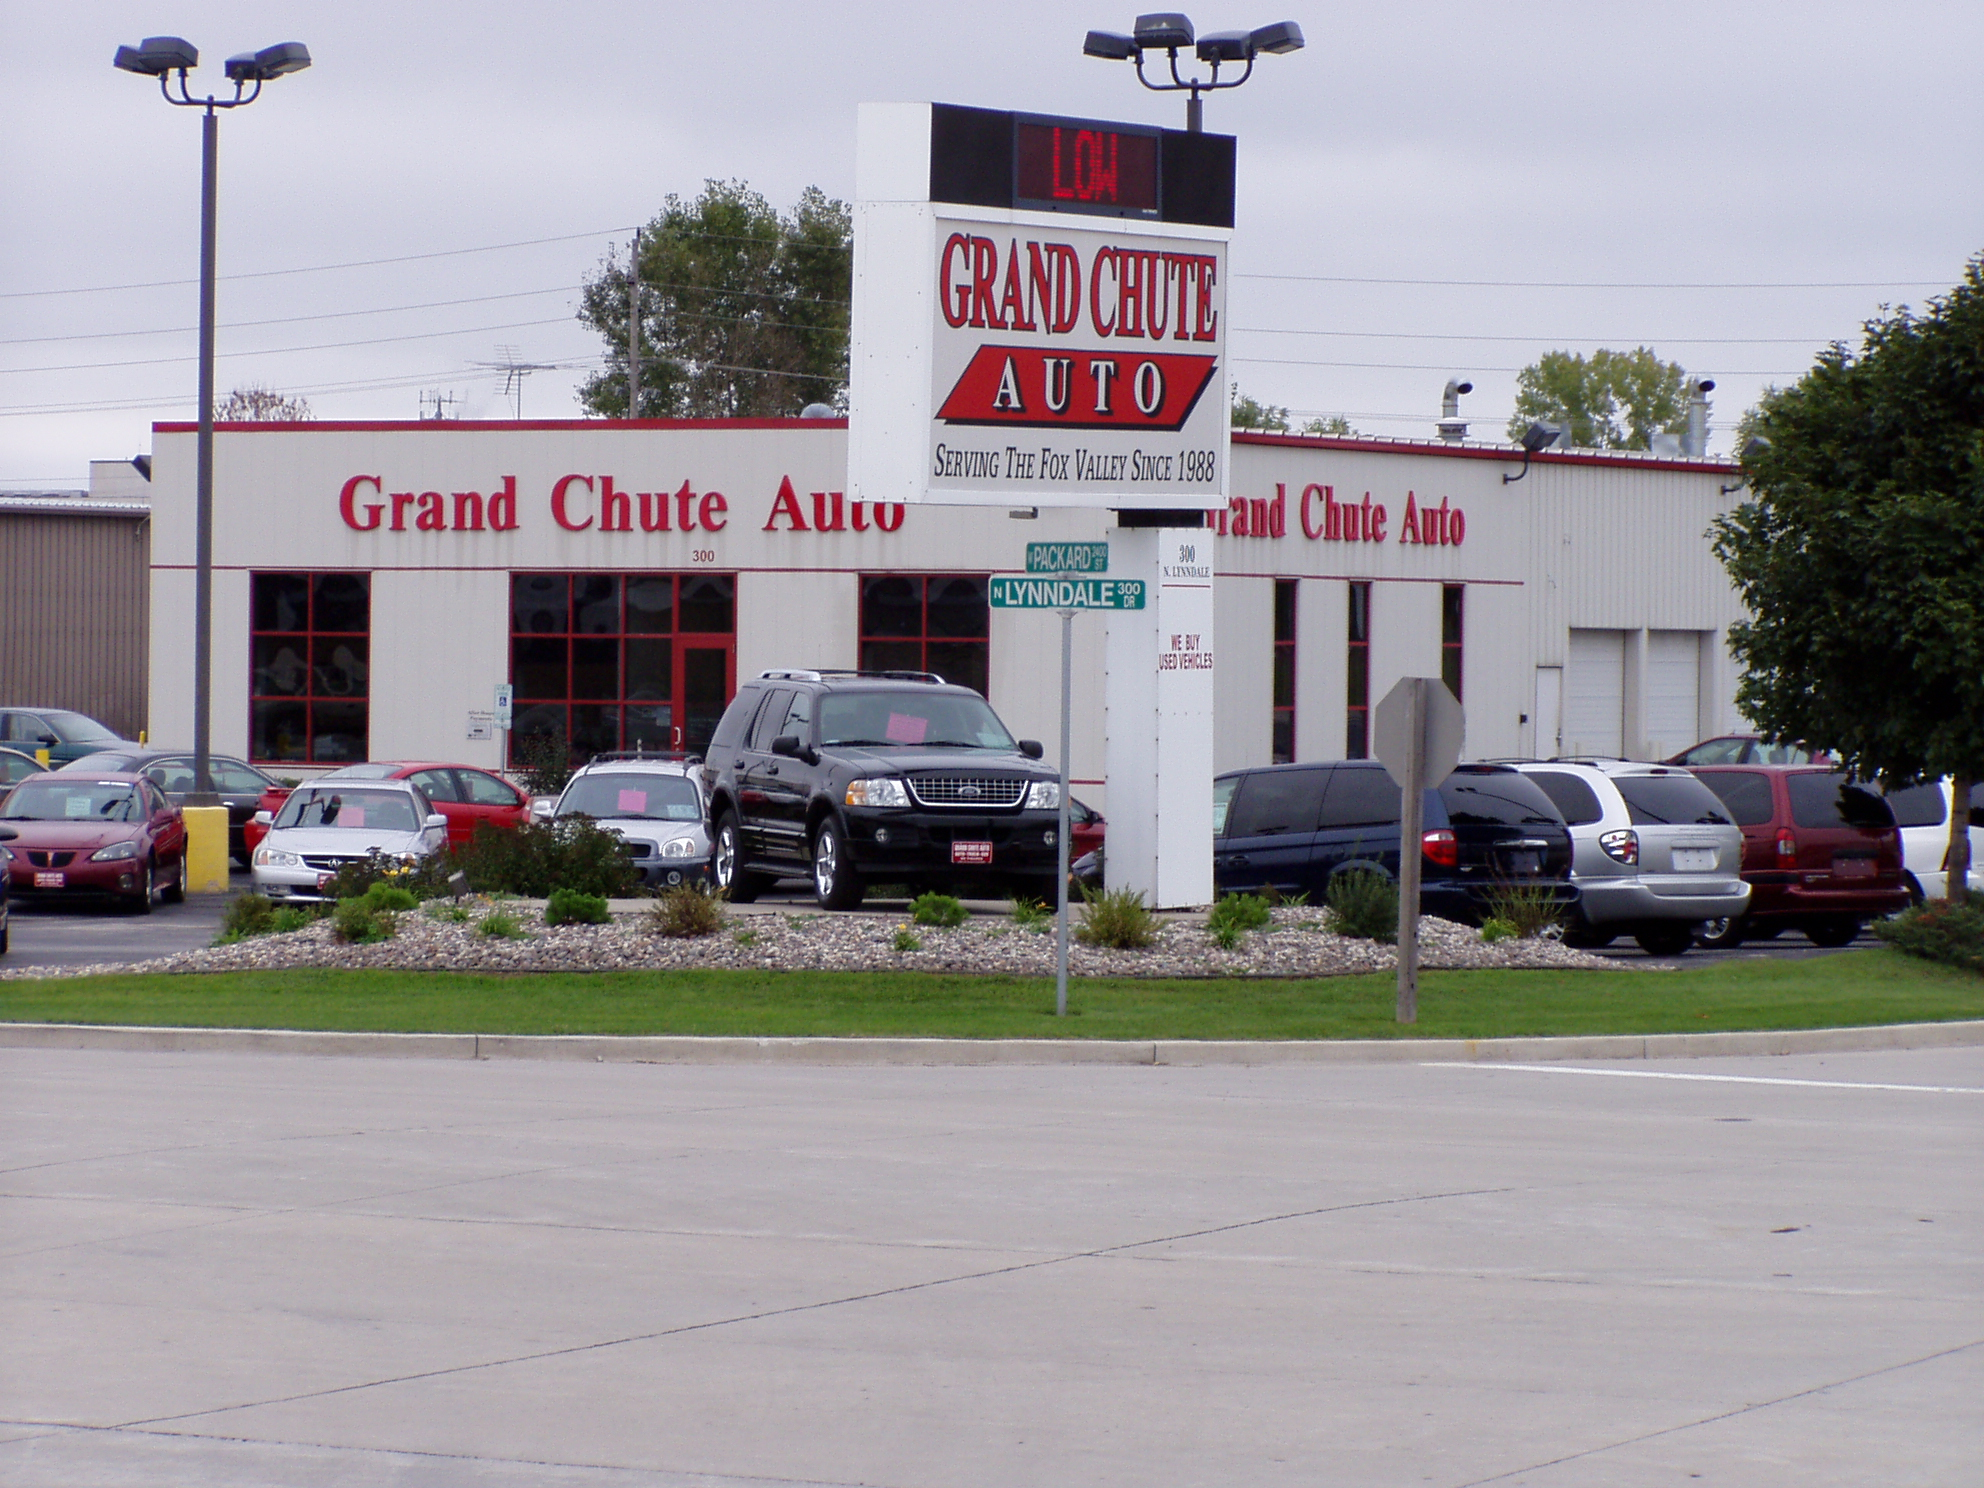 Personals in grand chute wisconsin